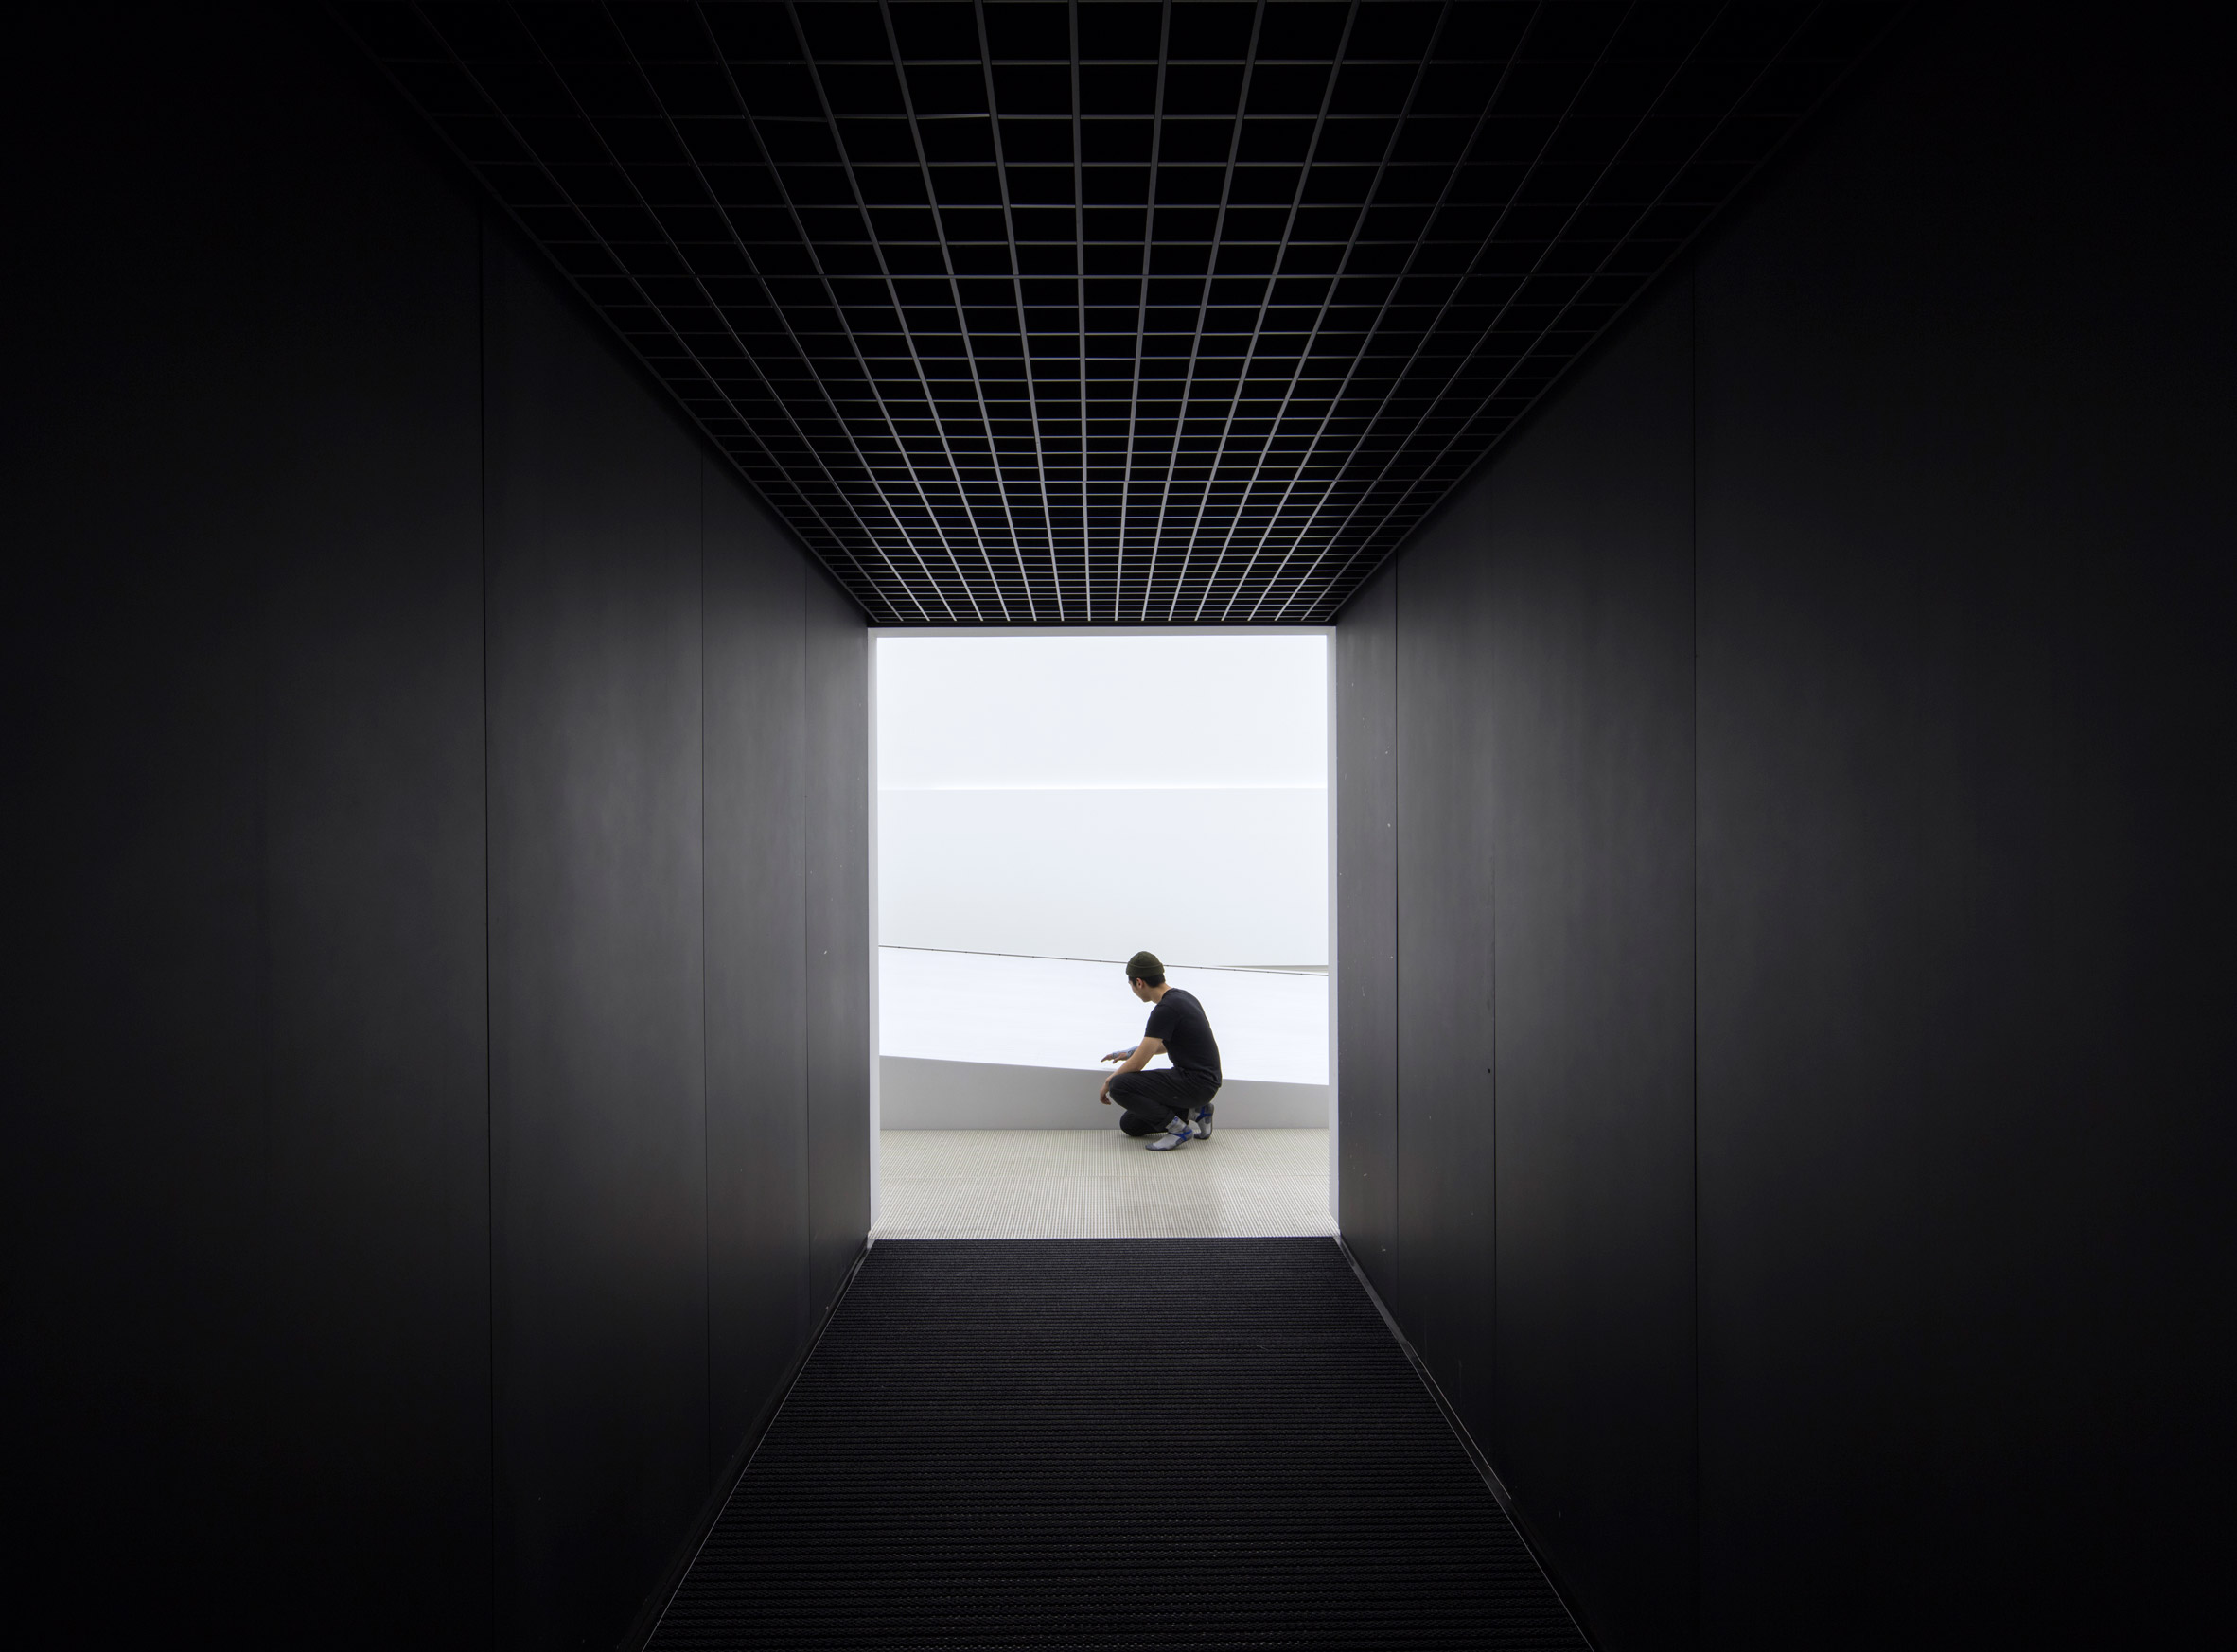 Vantablack pavilion by Asif Khan, Pyeongchang, South Korea